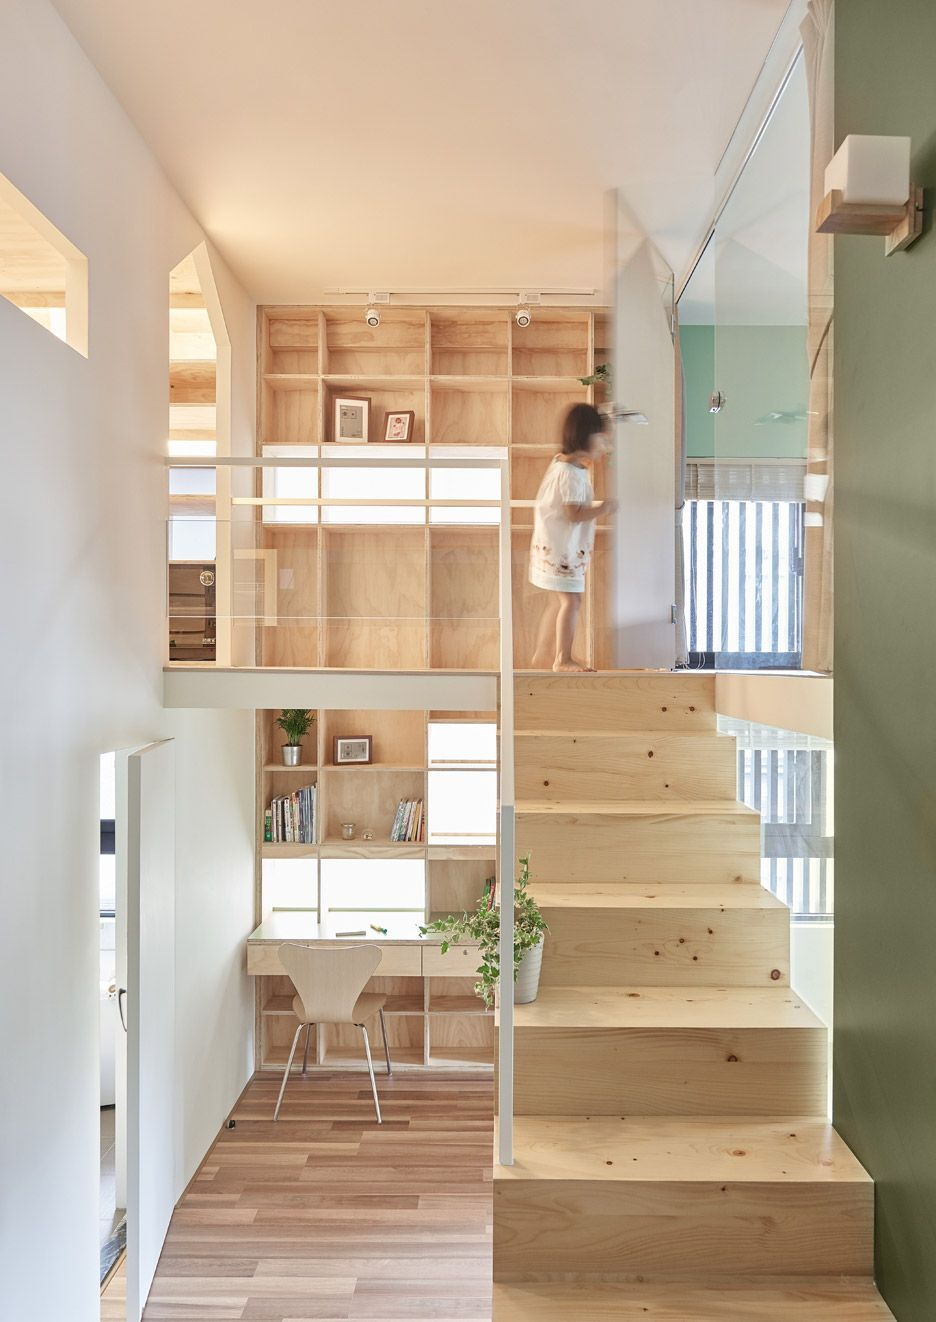 Find and save ideas about Mezzanine floor on Pinterest